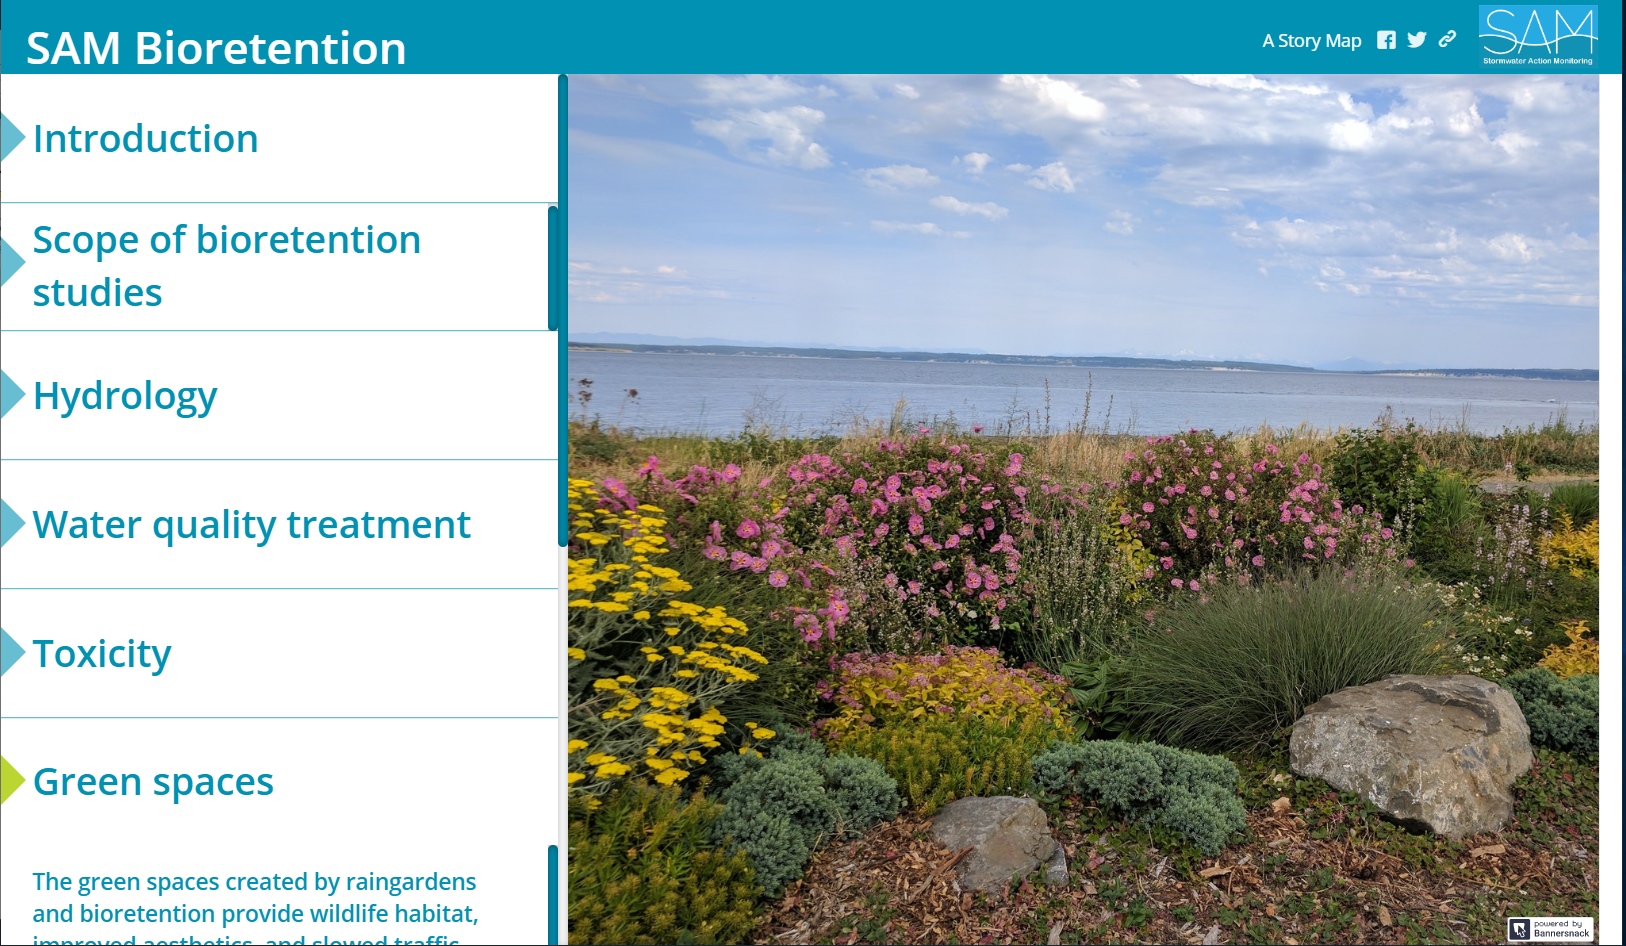 screenshot of the navigation within the storymap. Categories: Introduction, Scope of Bioretention studies,Hydrology,Water quality treatment,Toxicity, Green spaces